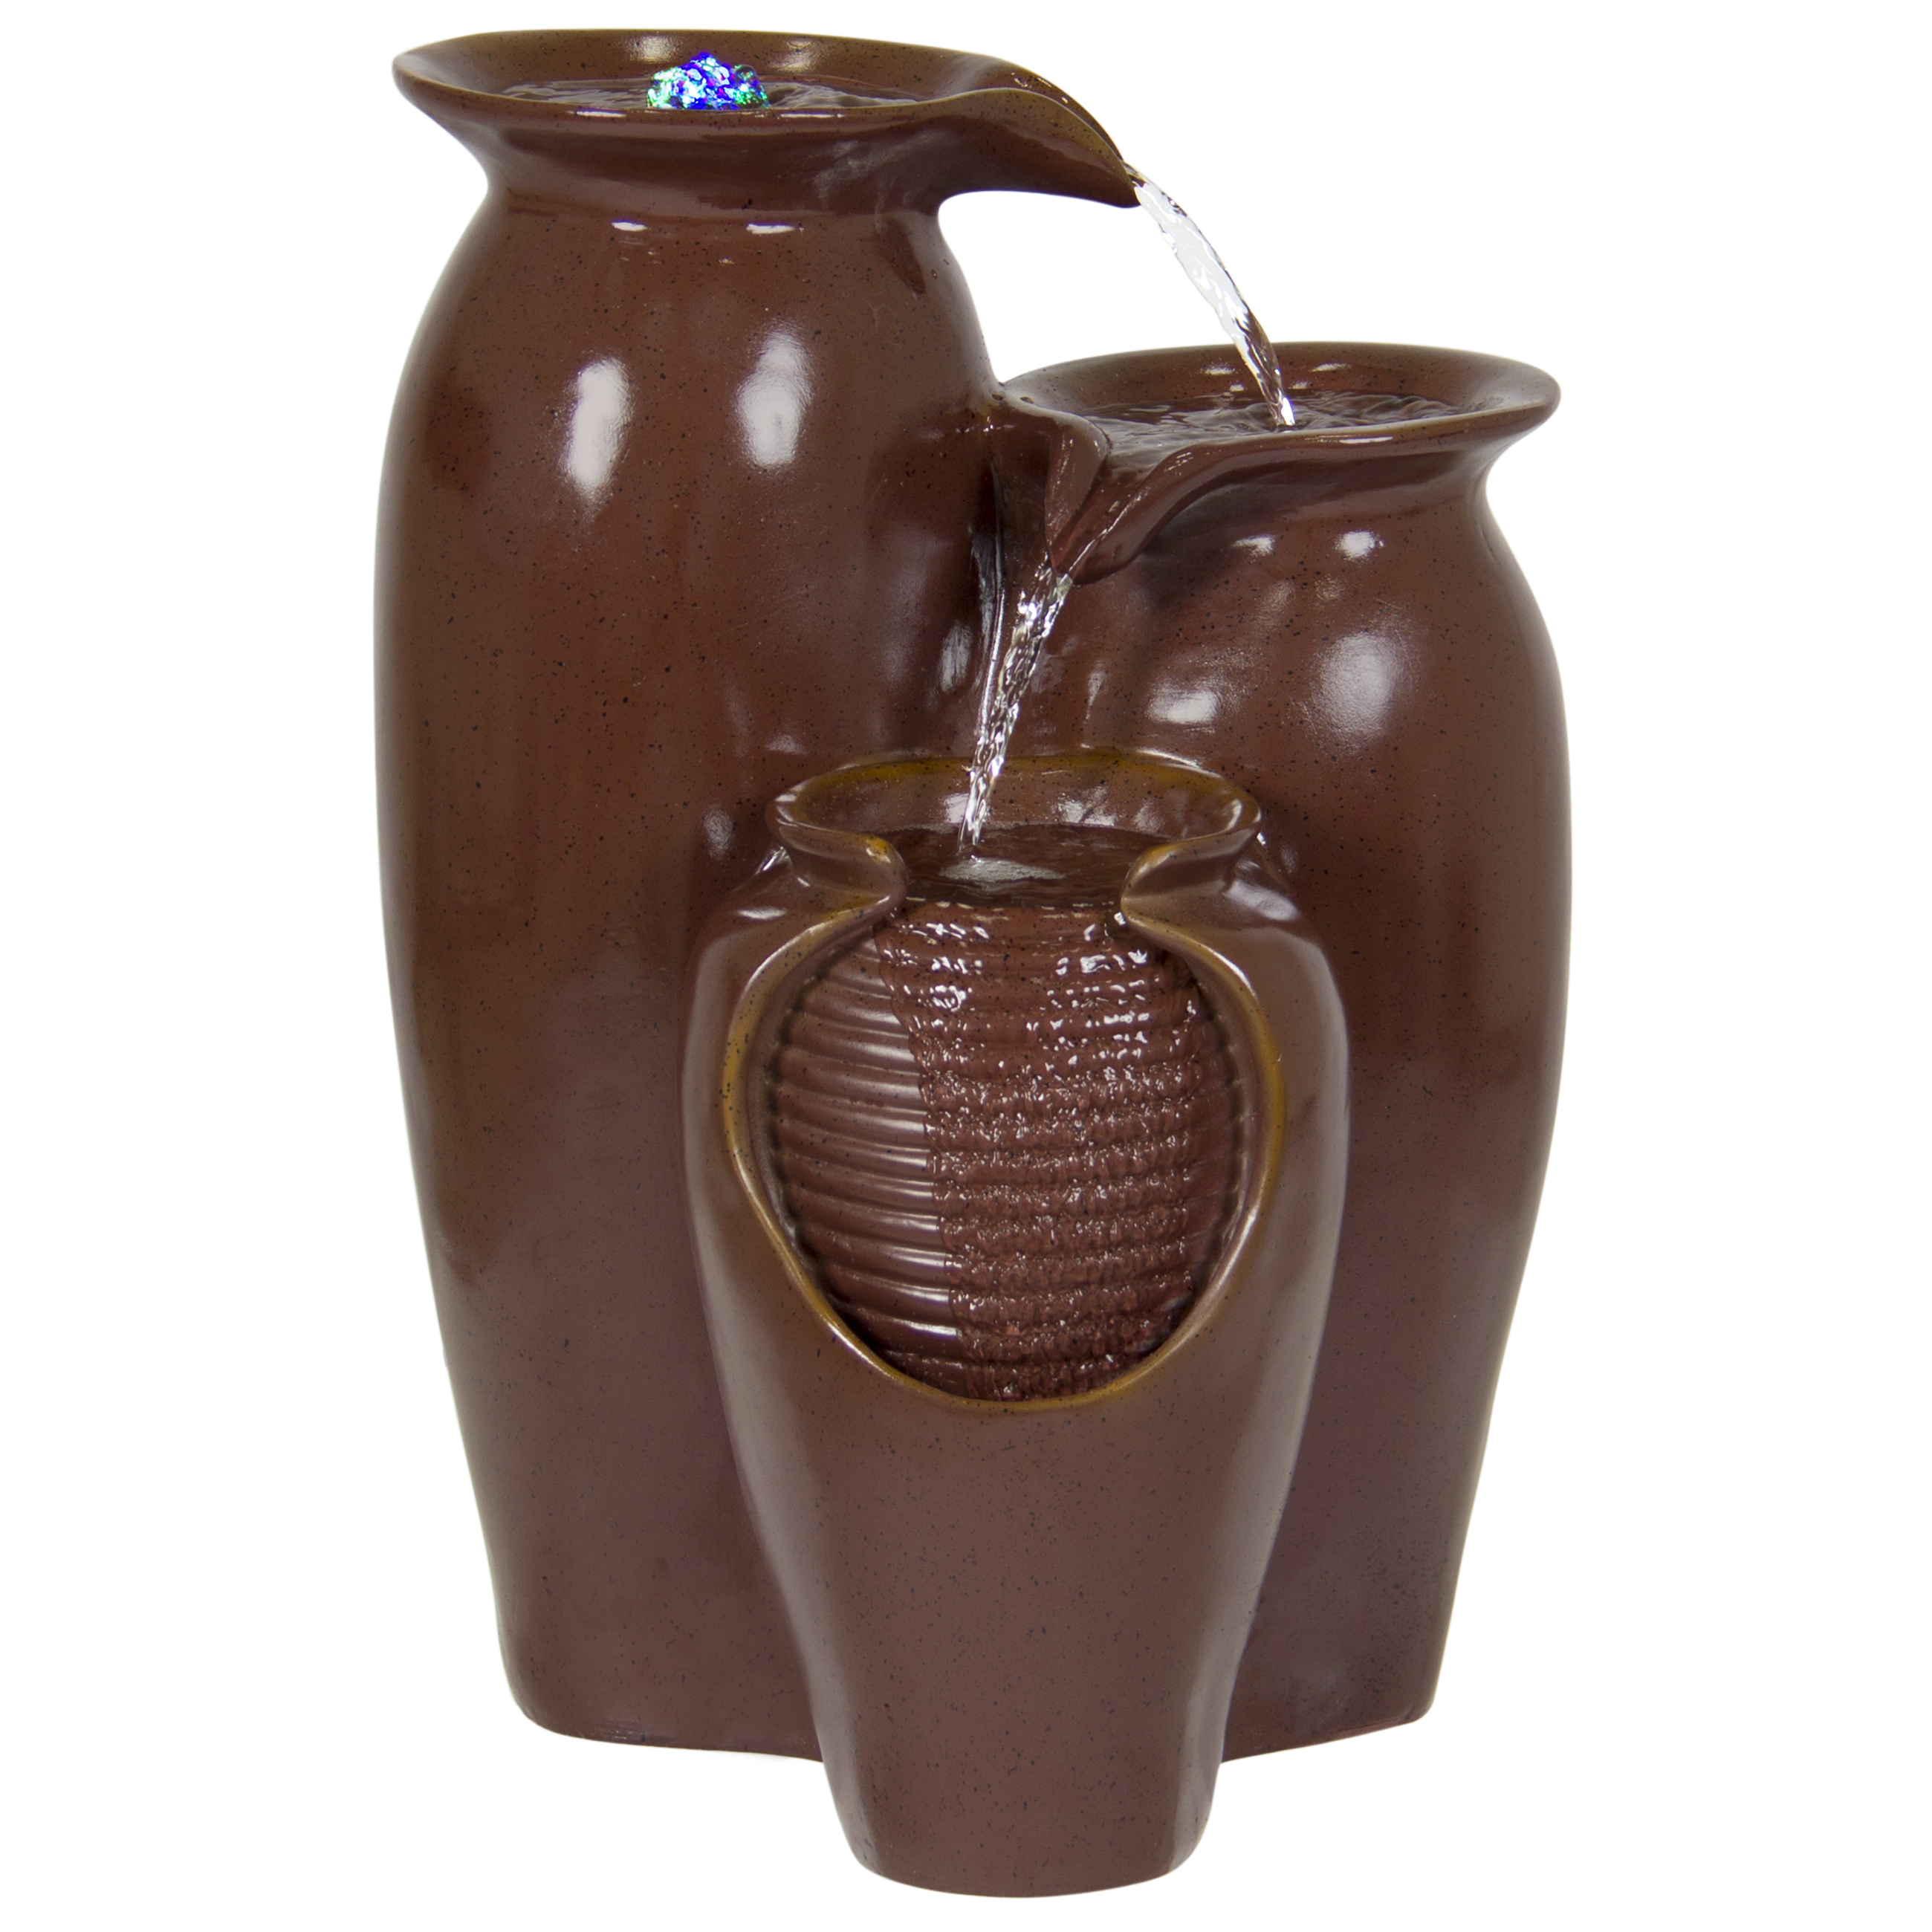 Best Choice Products Home Accent Indoor Outdoor 3 Tier Jar Fountain W/ LED Lights, Brown